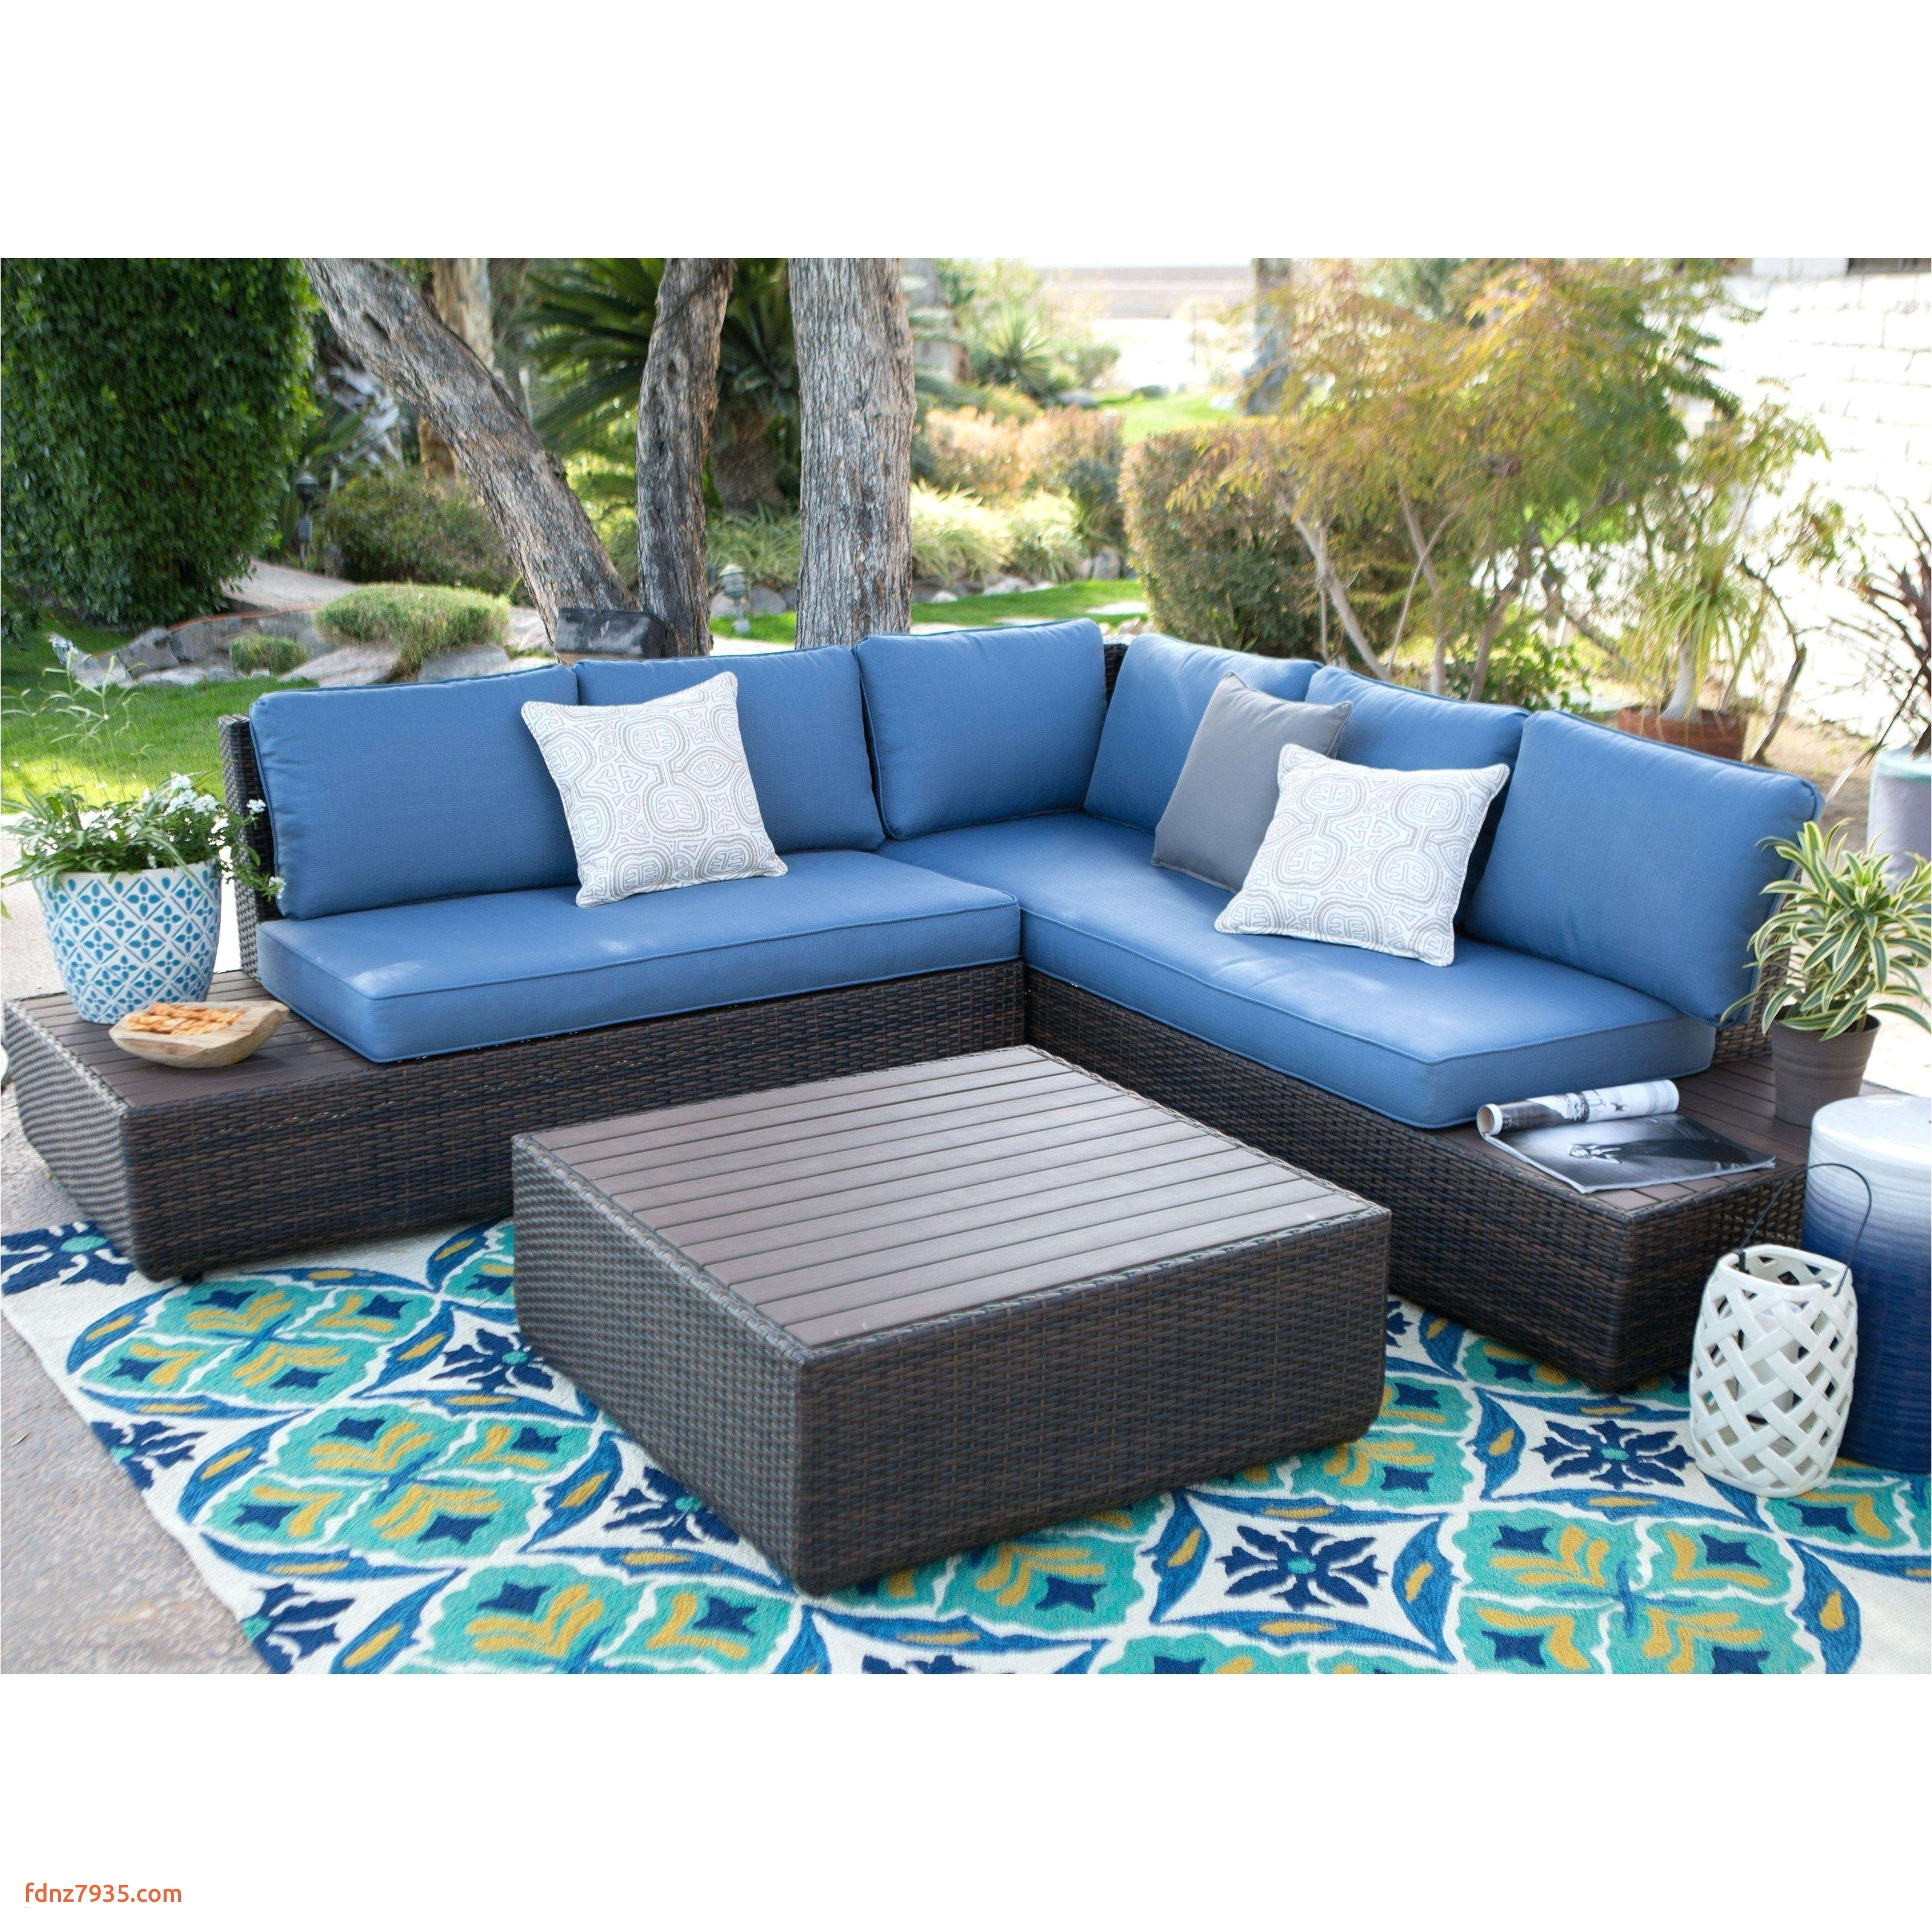 outdoor patio furniture cushions best wicker outdoor sofa 0d patio chairs sale replacement cushions design